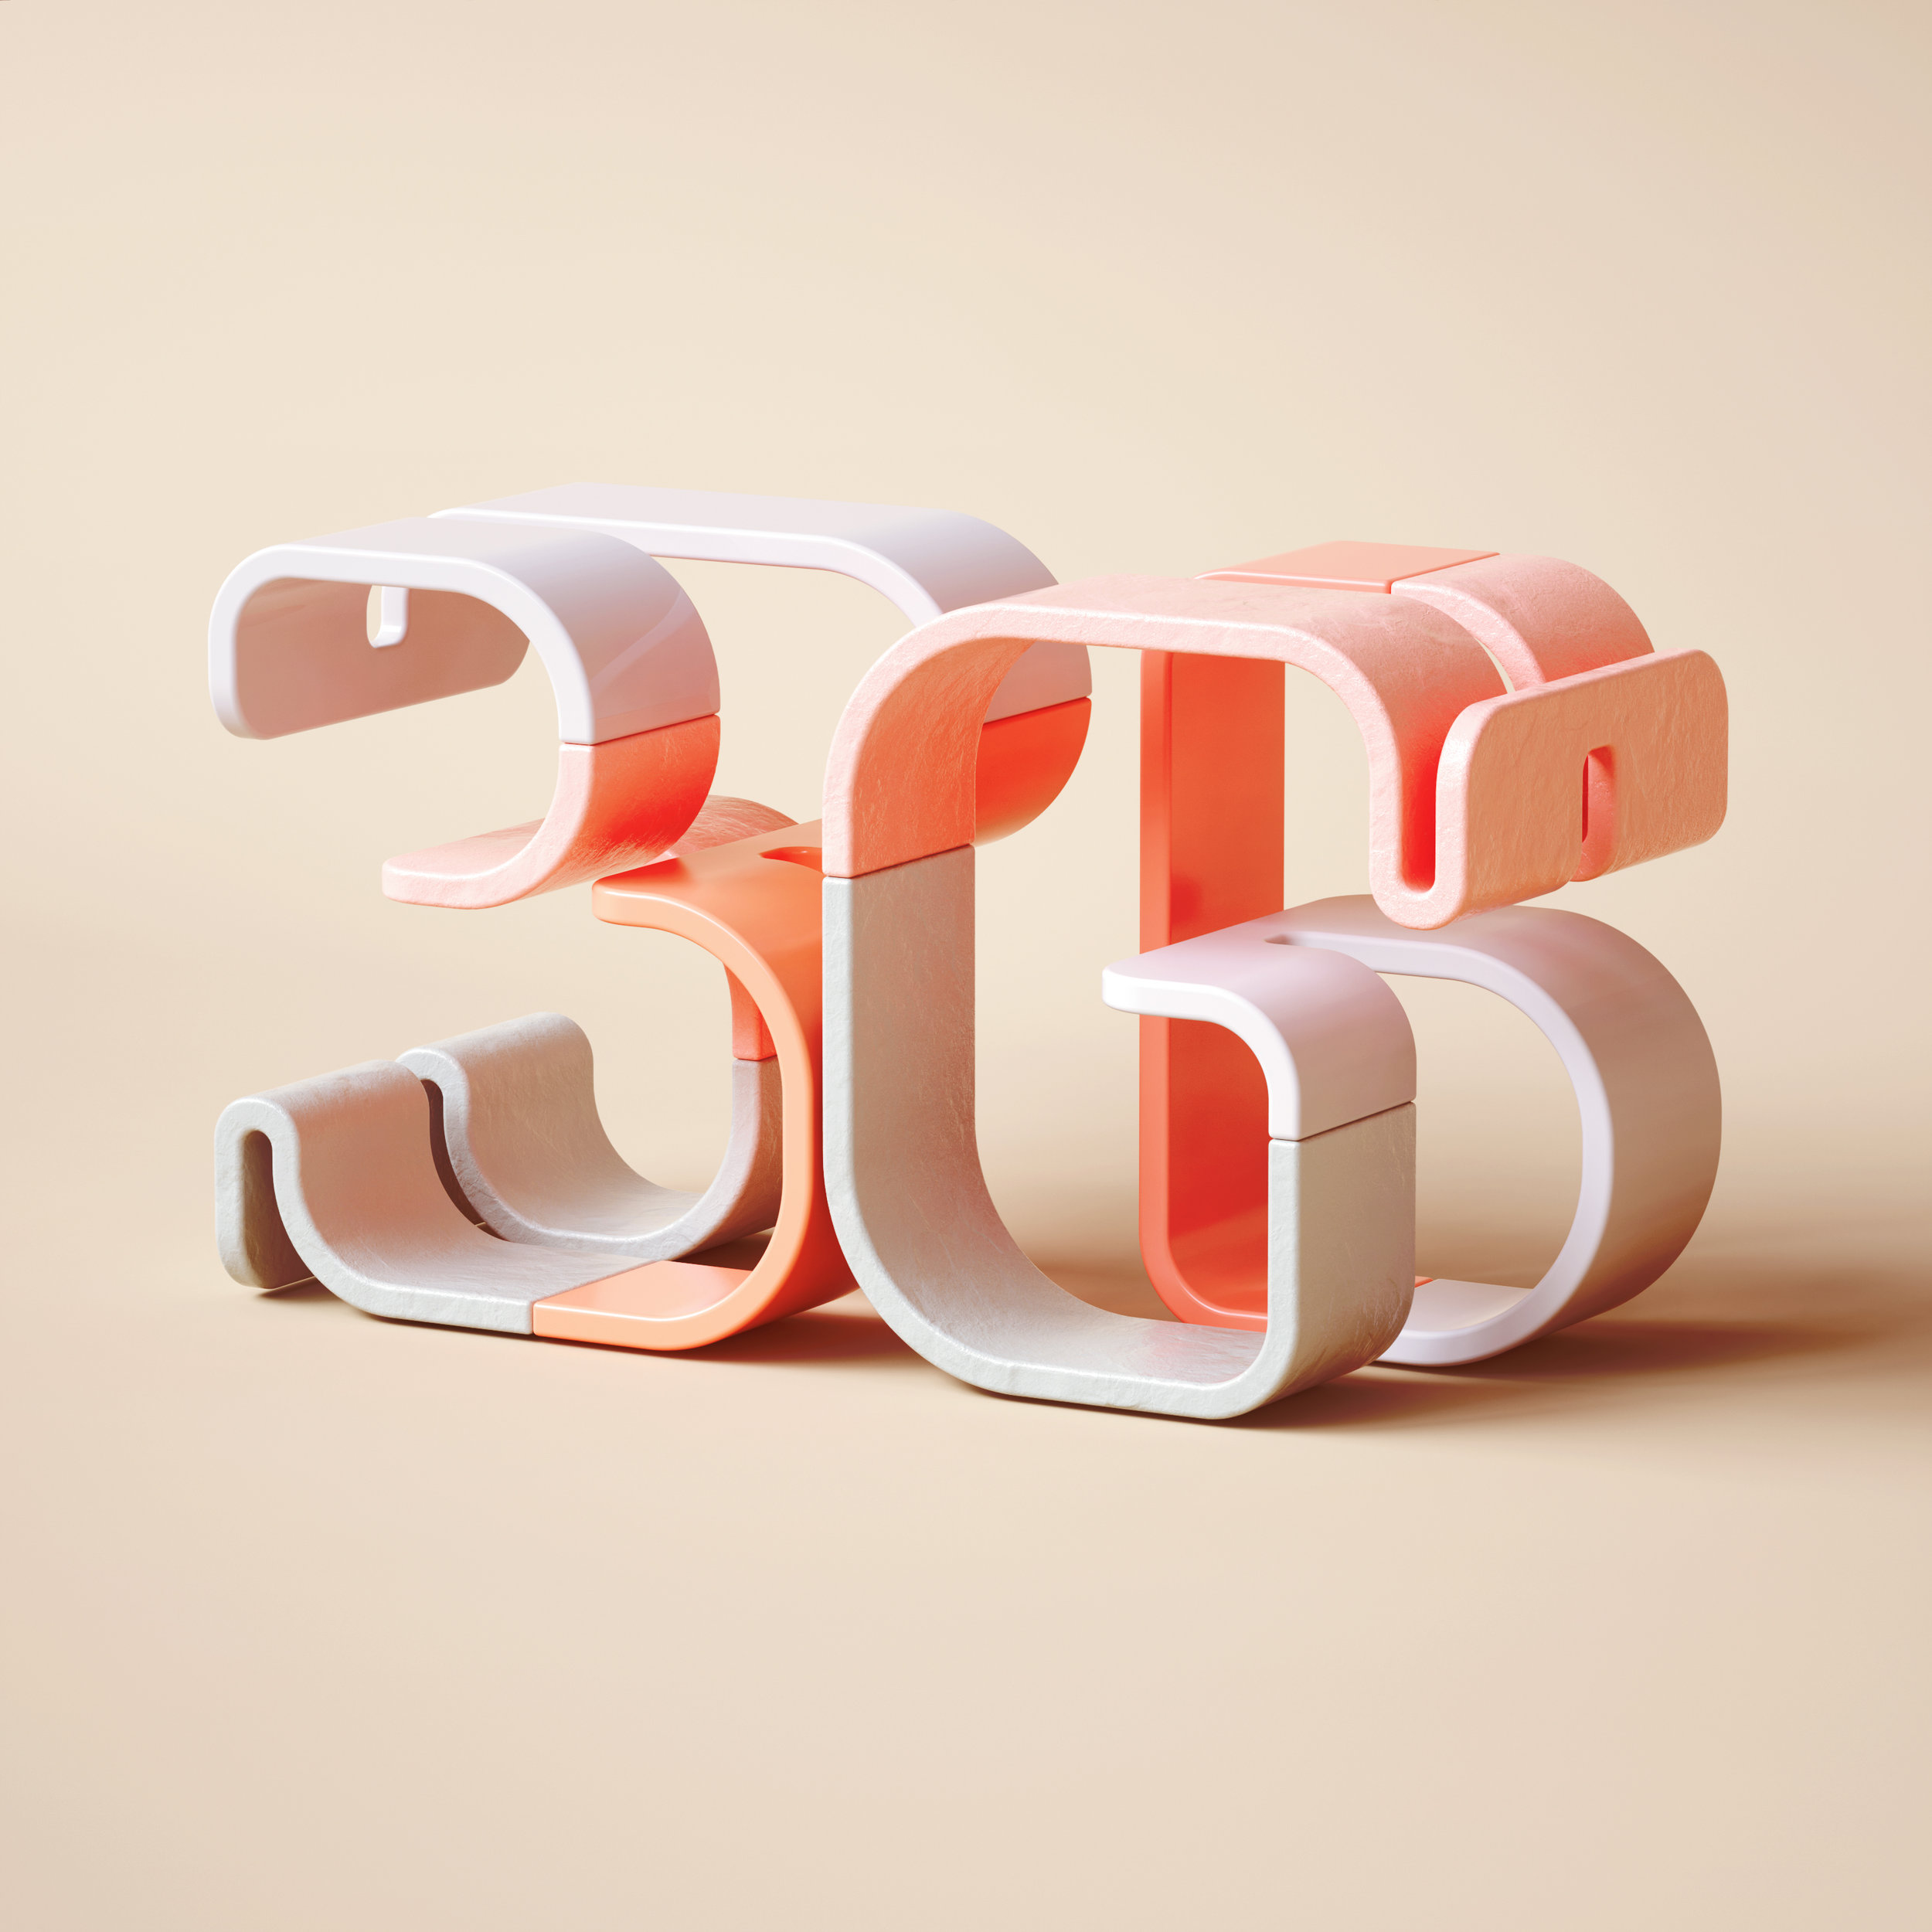 36 Days of Type 2019 - 3D Typeform number 36 visual.